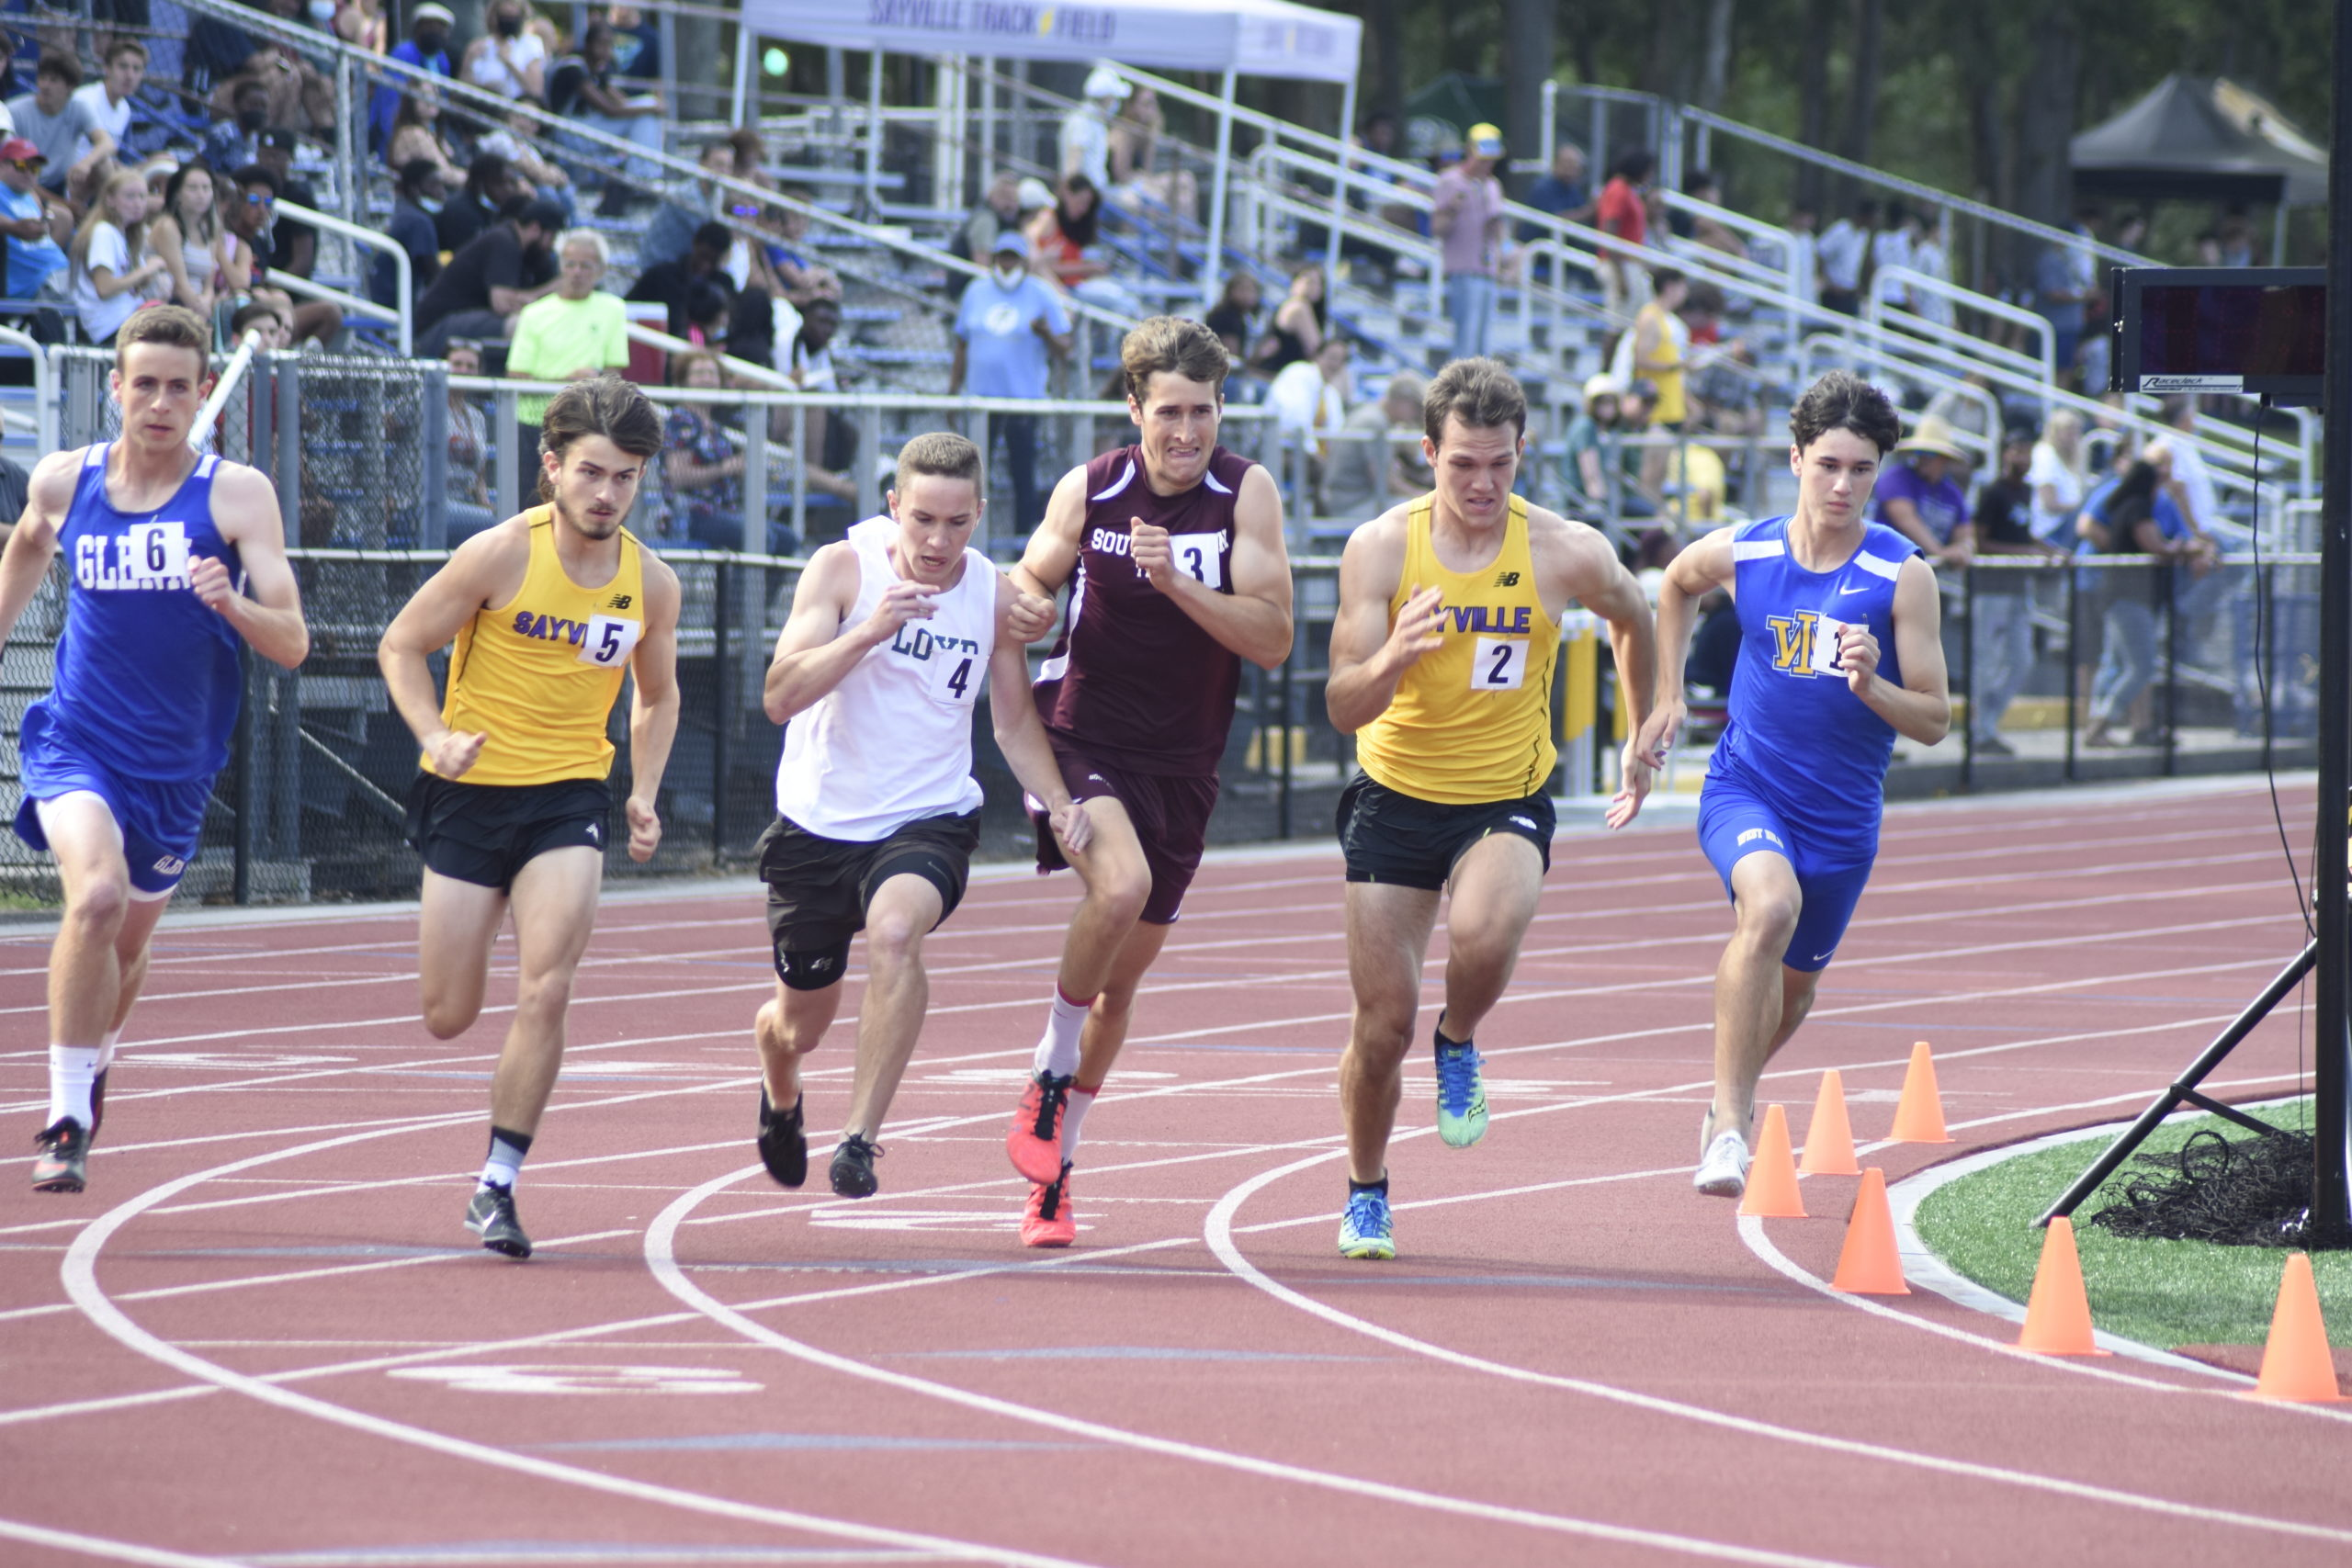 Southampton junior Billy Malone at the start of the 800-meter run.